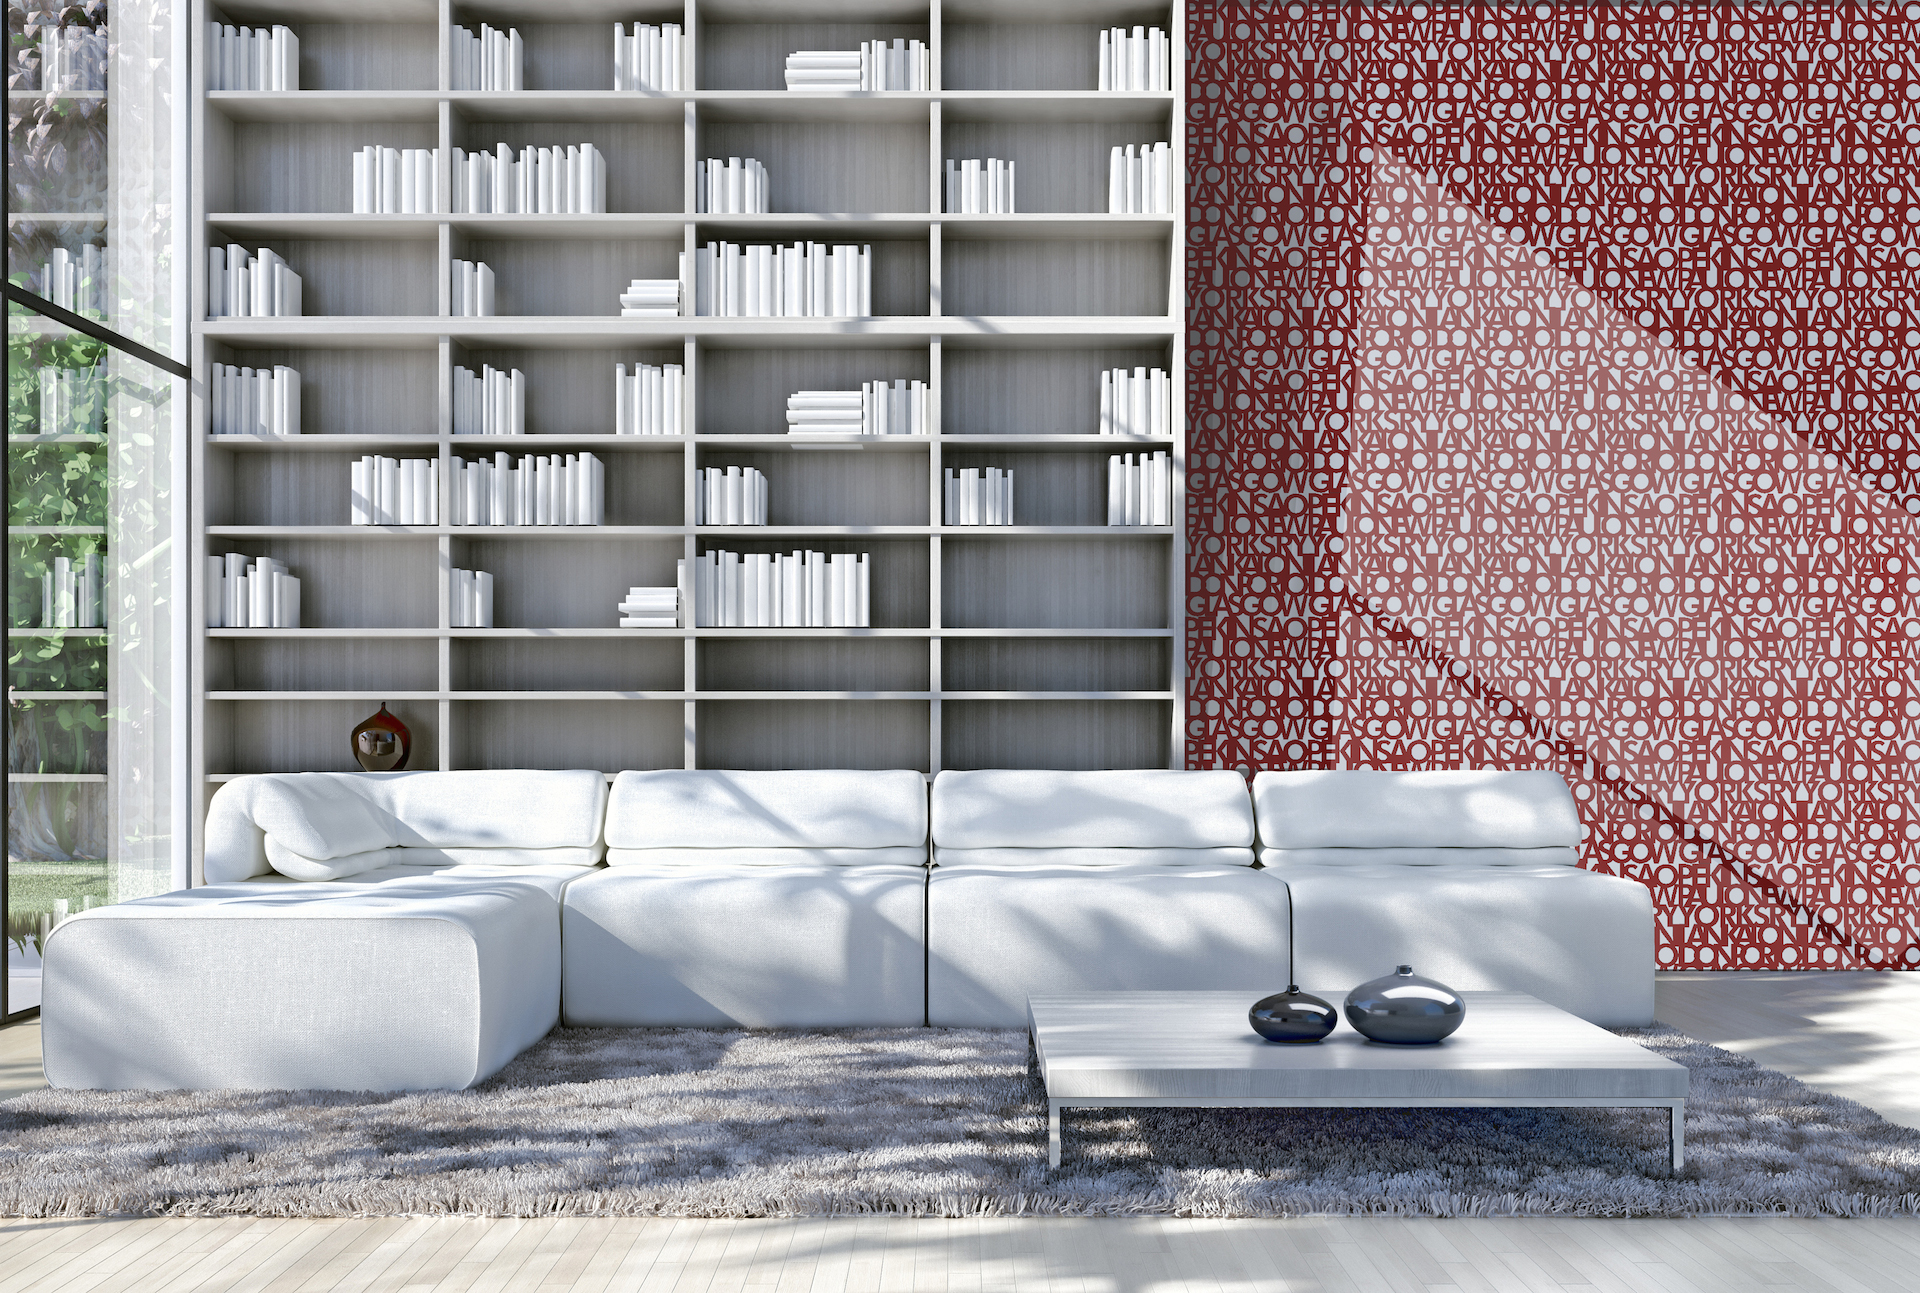 Pattern Tiles - Sustainable Materials